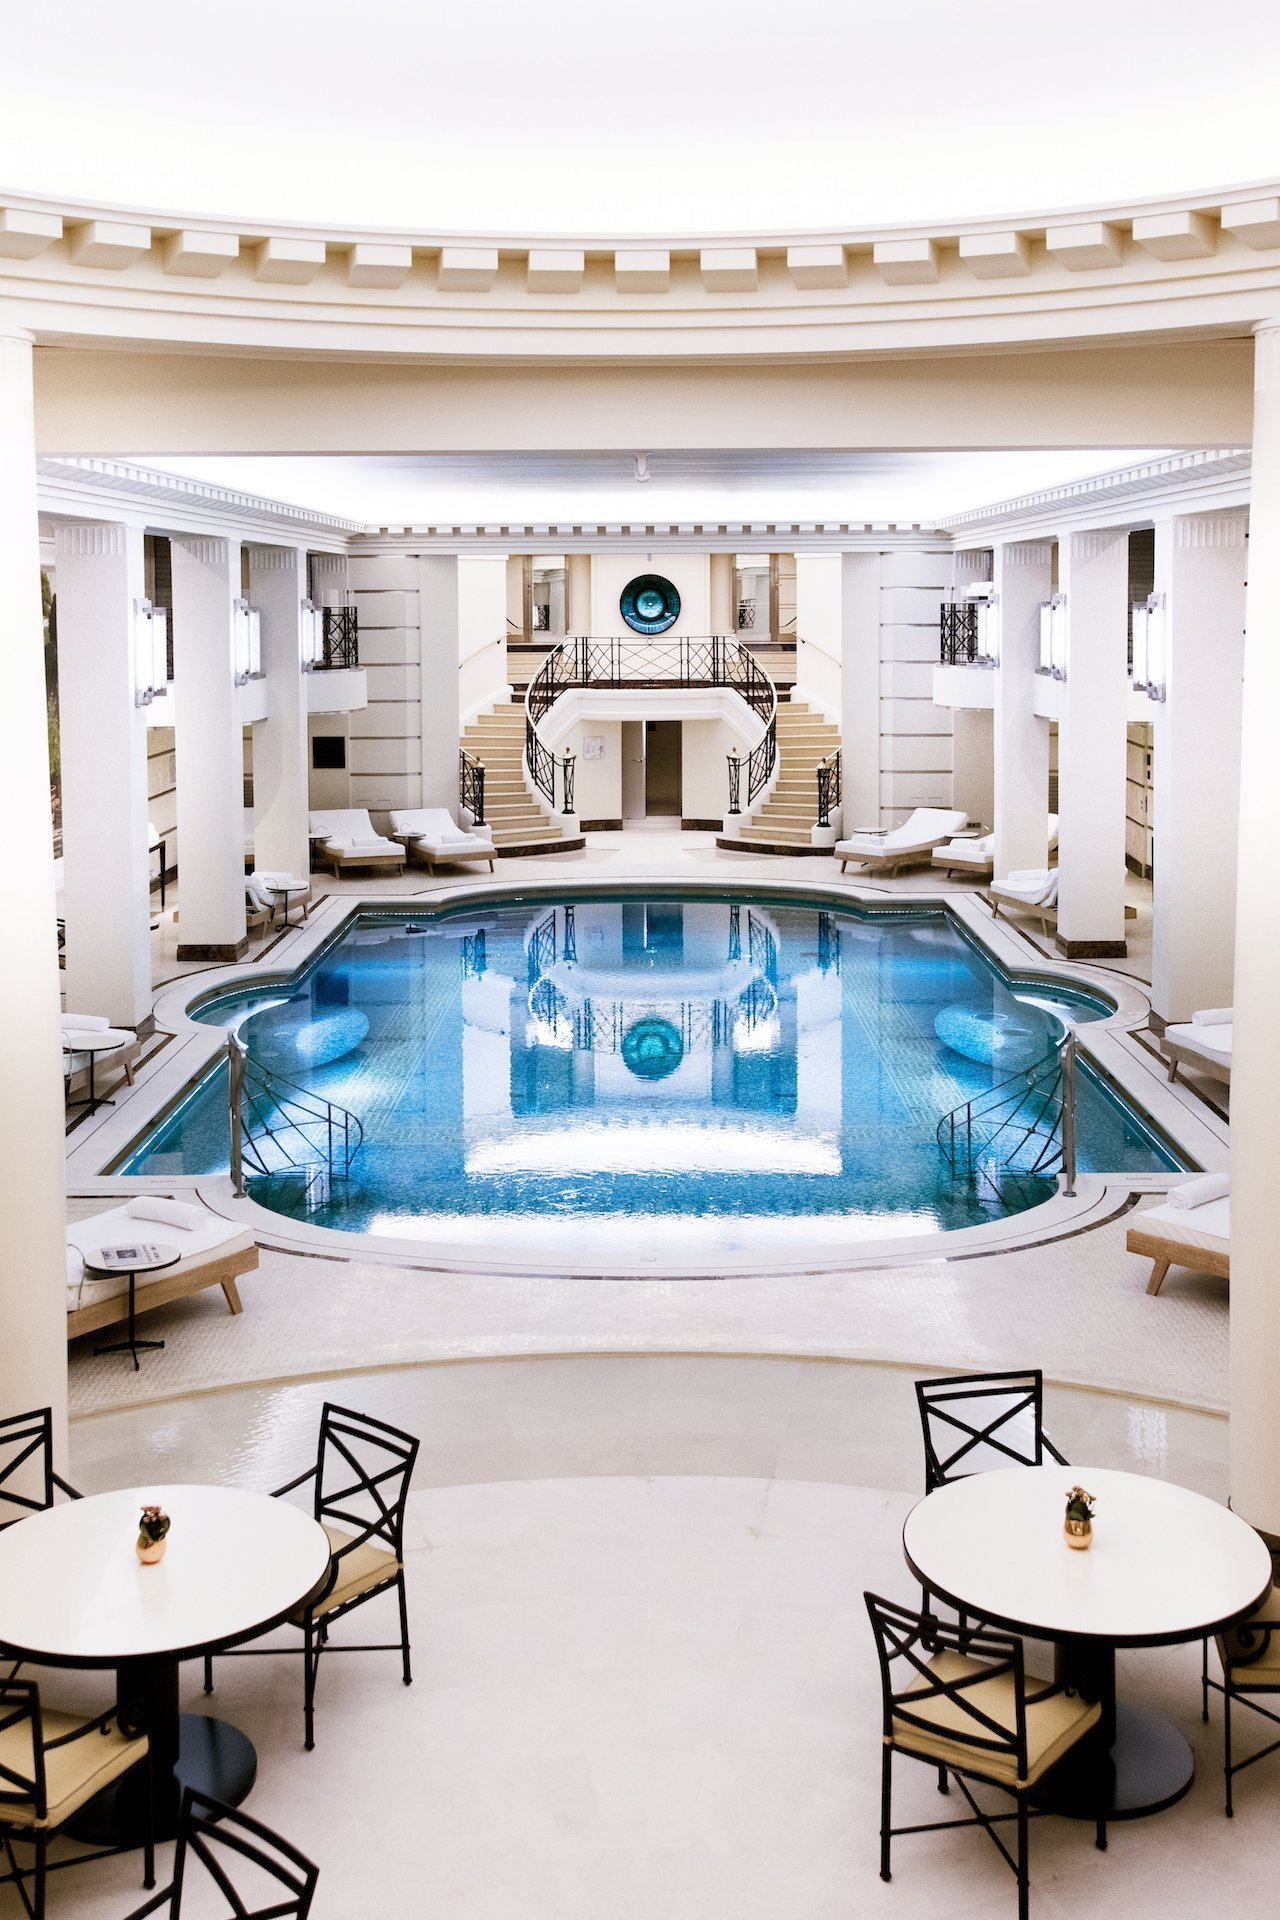 Road test: the decadent Le Grand Soin facial and massage at the Chanel spa at the Ritz Paris